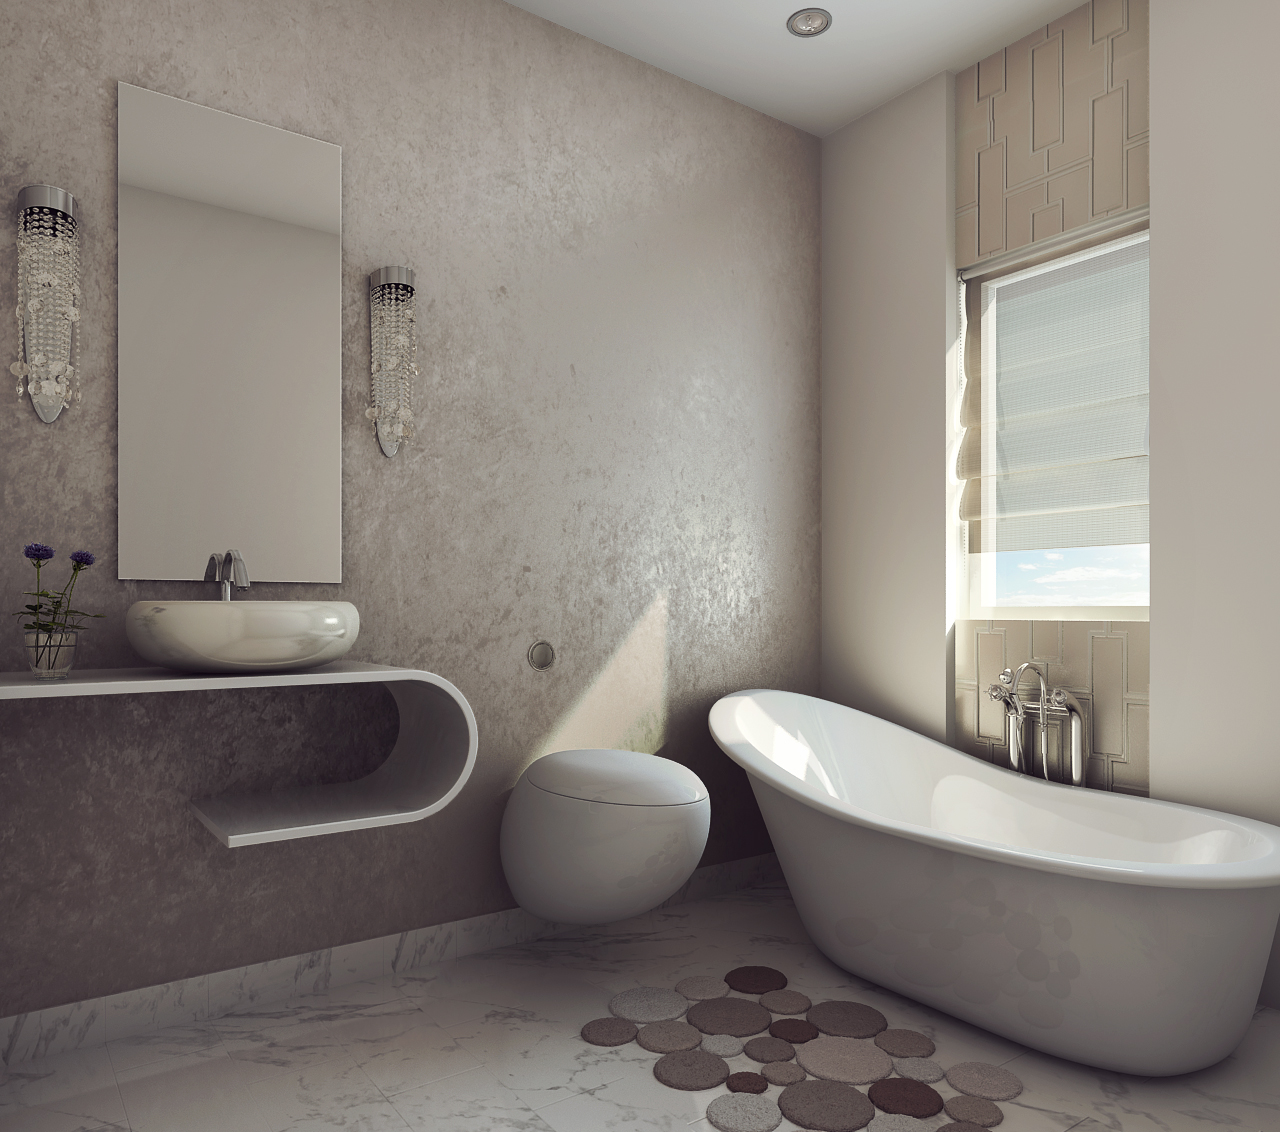 Modern earthy design bath room free 3d model max for Bathroom design 3d model